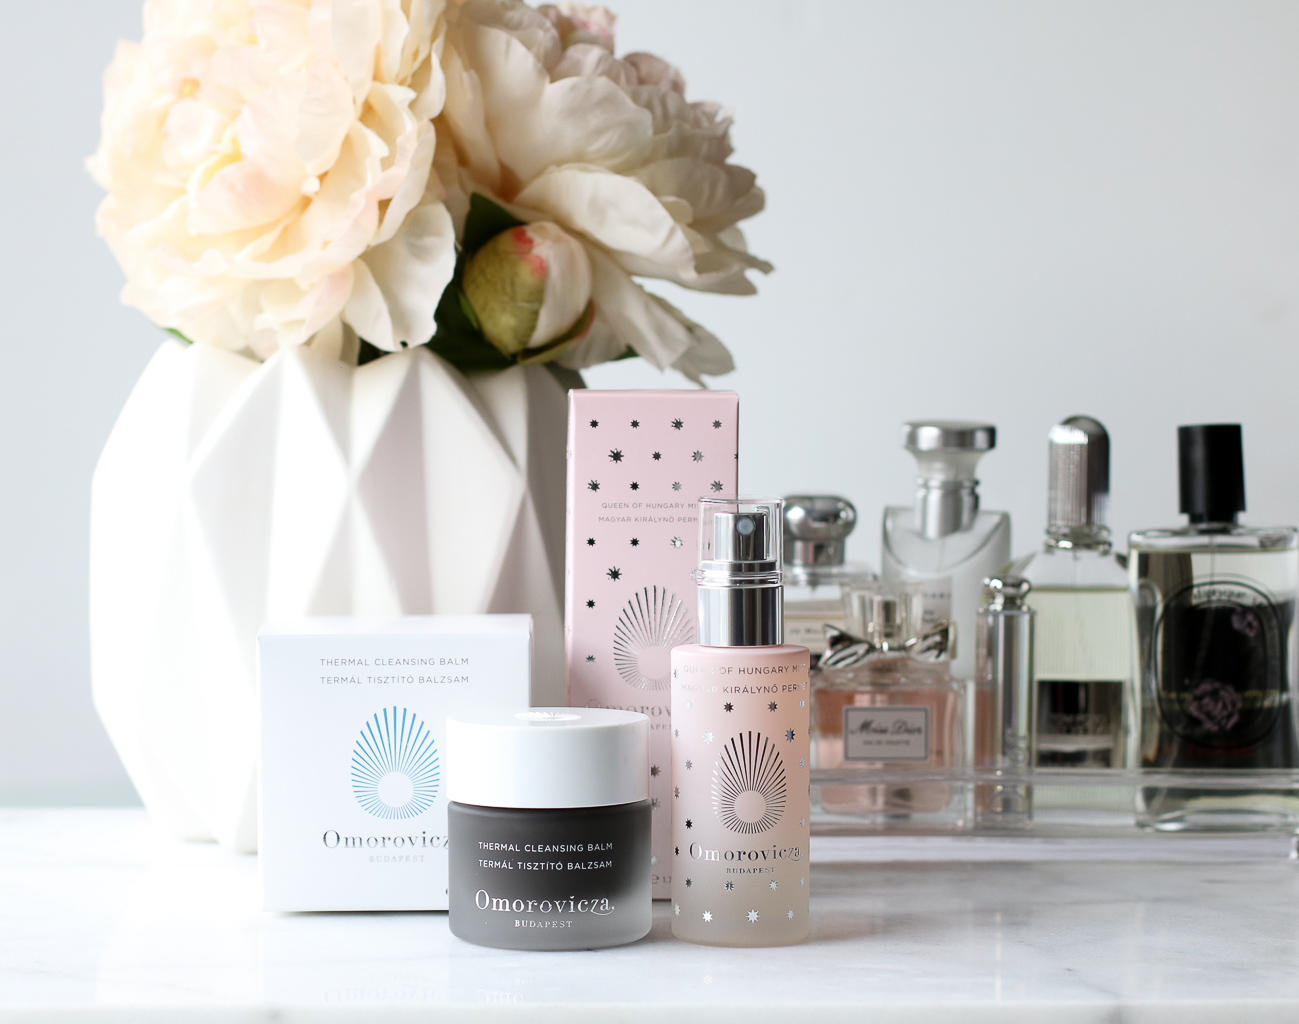 The Best Cleansing Balm and Facial Mist For Dry Skin – Omorovicza